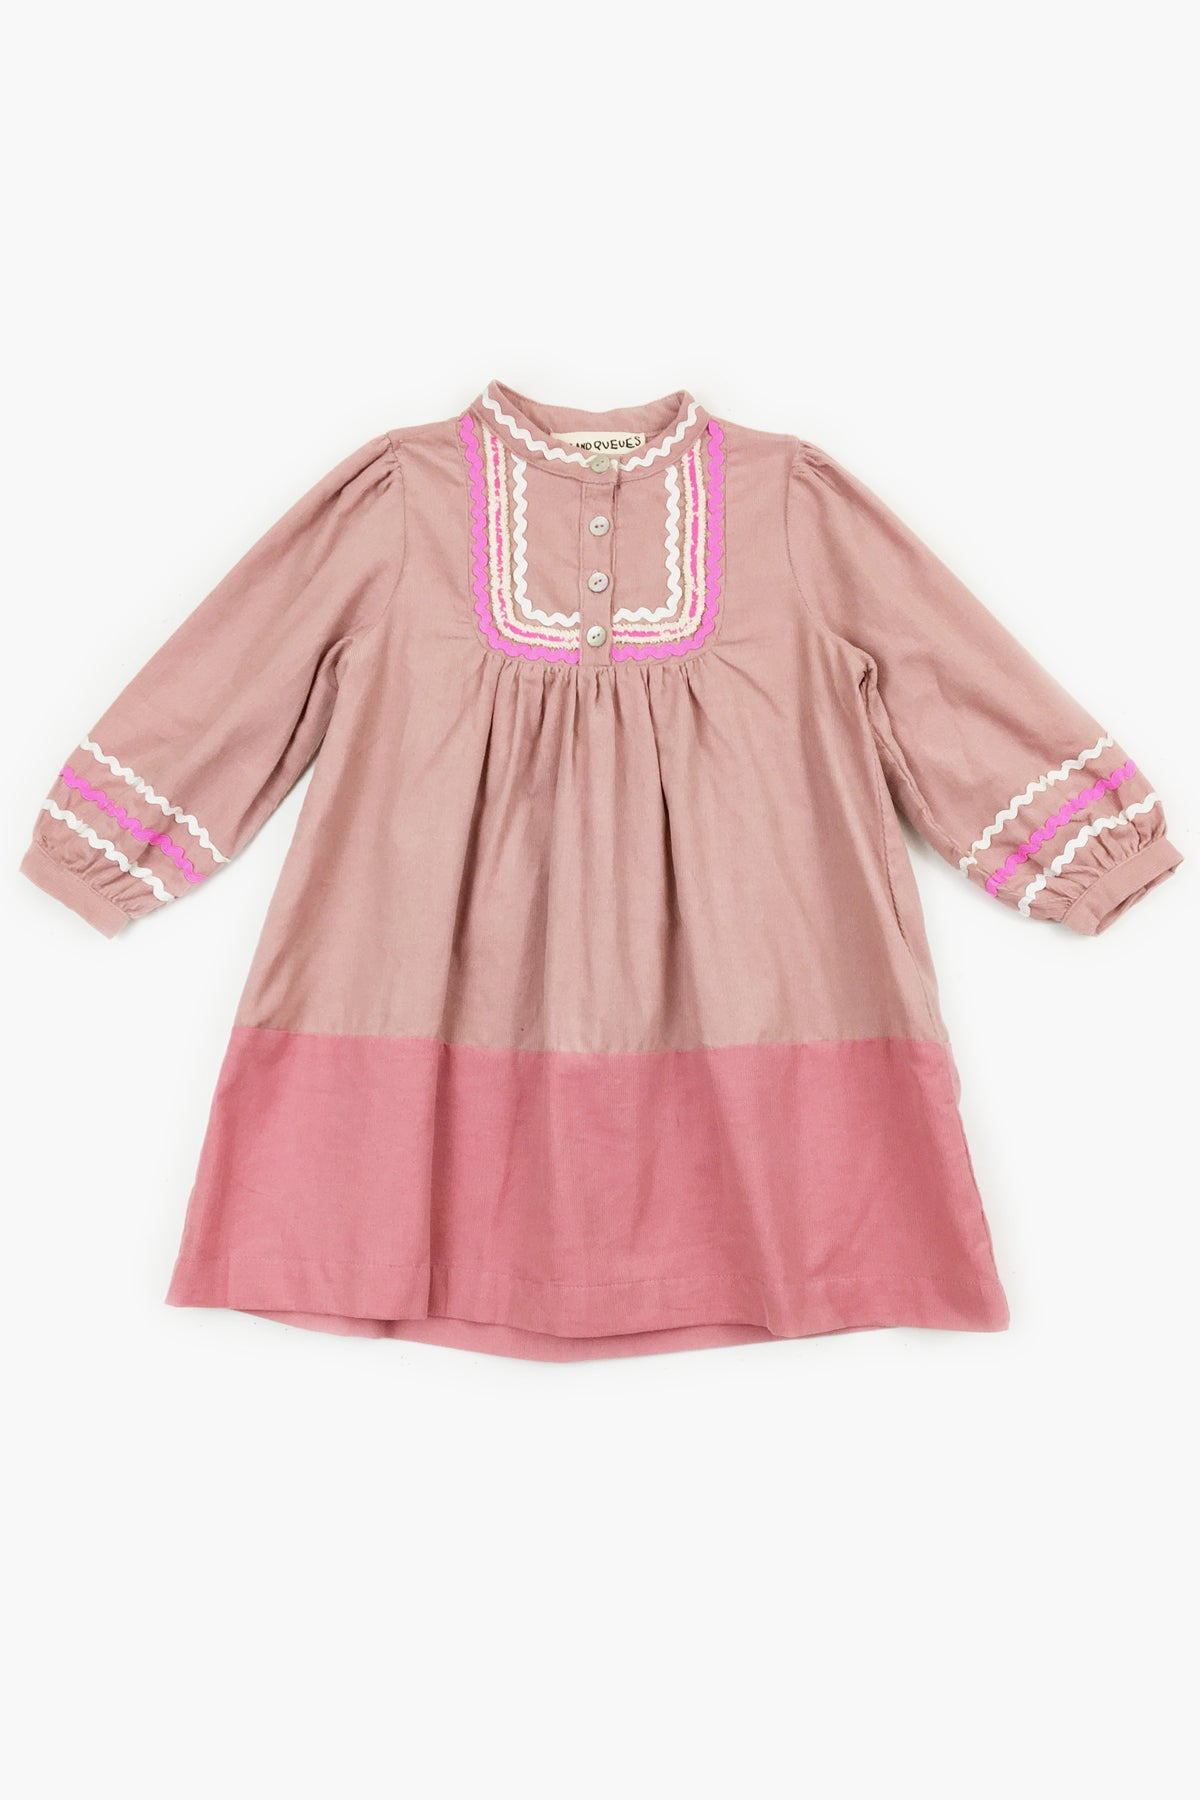 Peas and Queues Sparrow Girls Dress - Pink